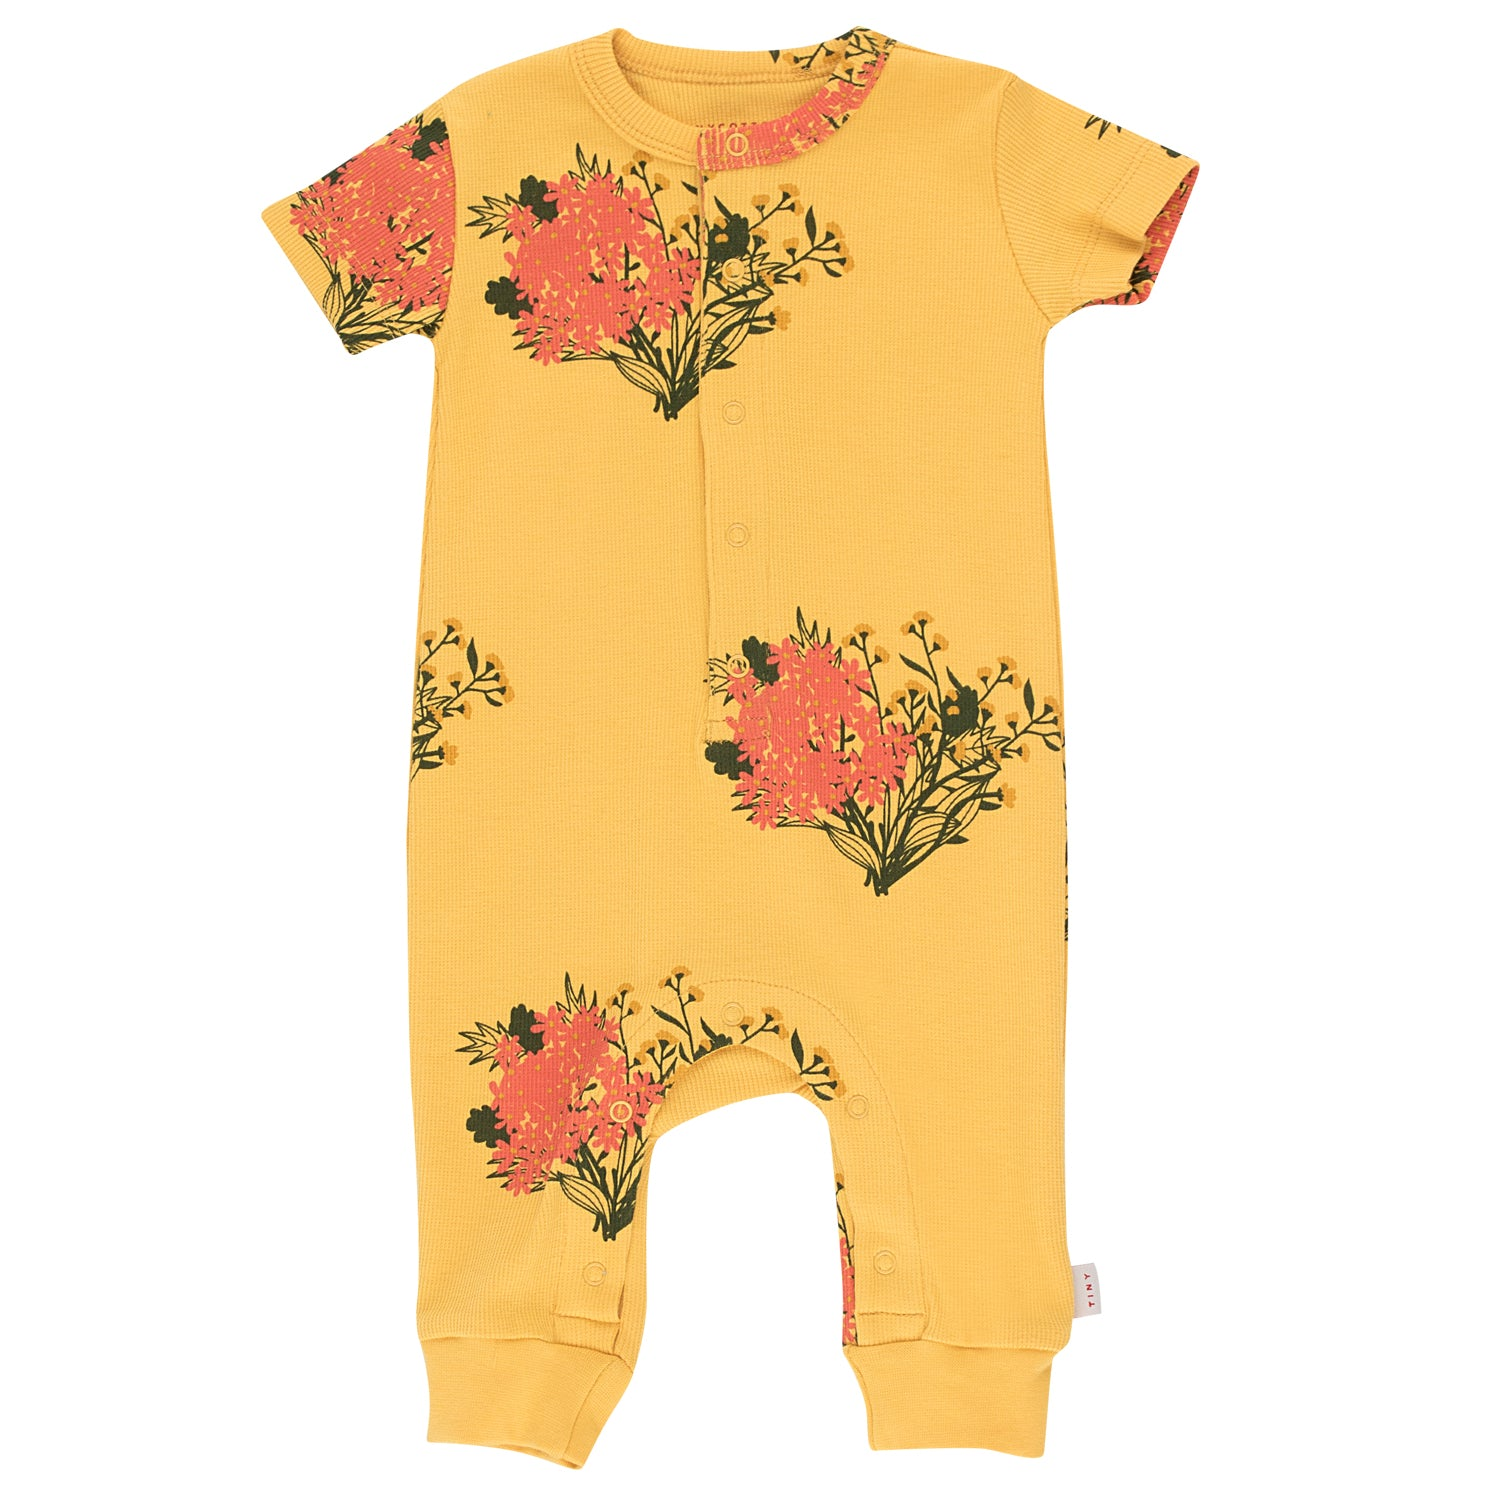 yoya, kids, baby, girls, tiny cottons, summer, lightweight, casual, graphic printed, short sleeved, onesie bodysuit